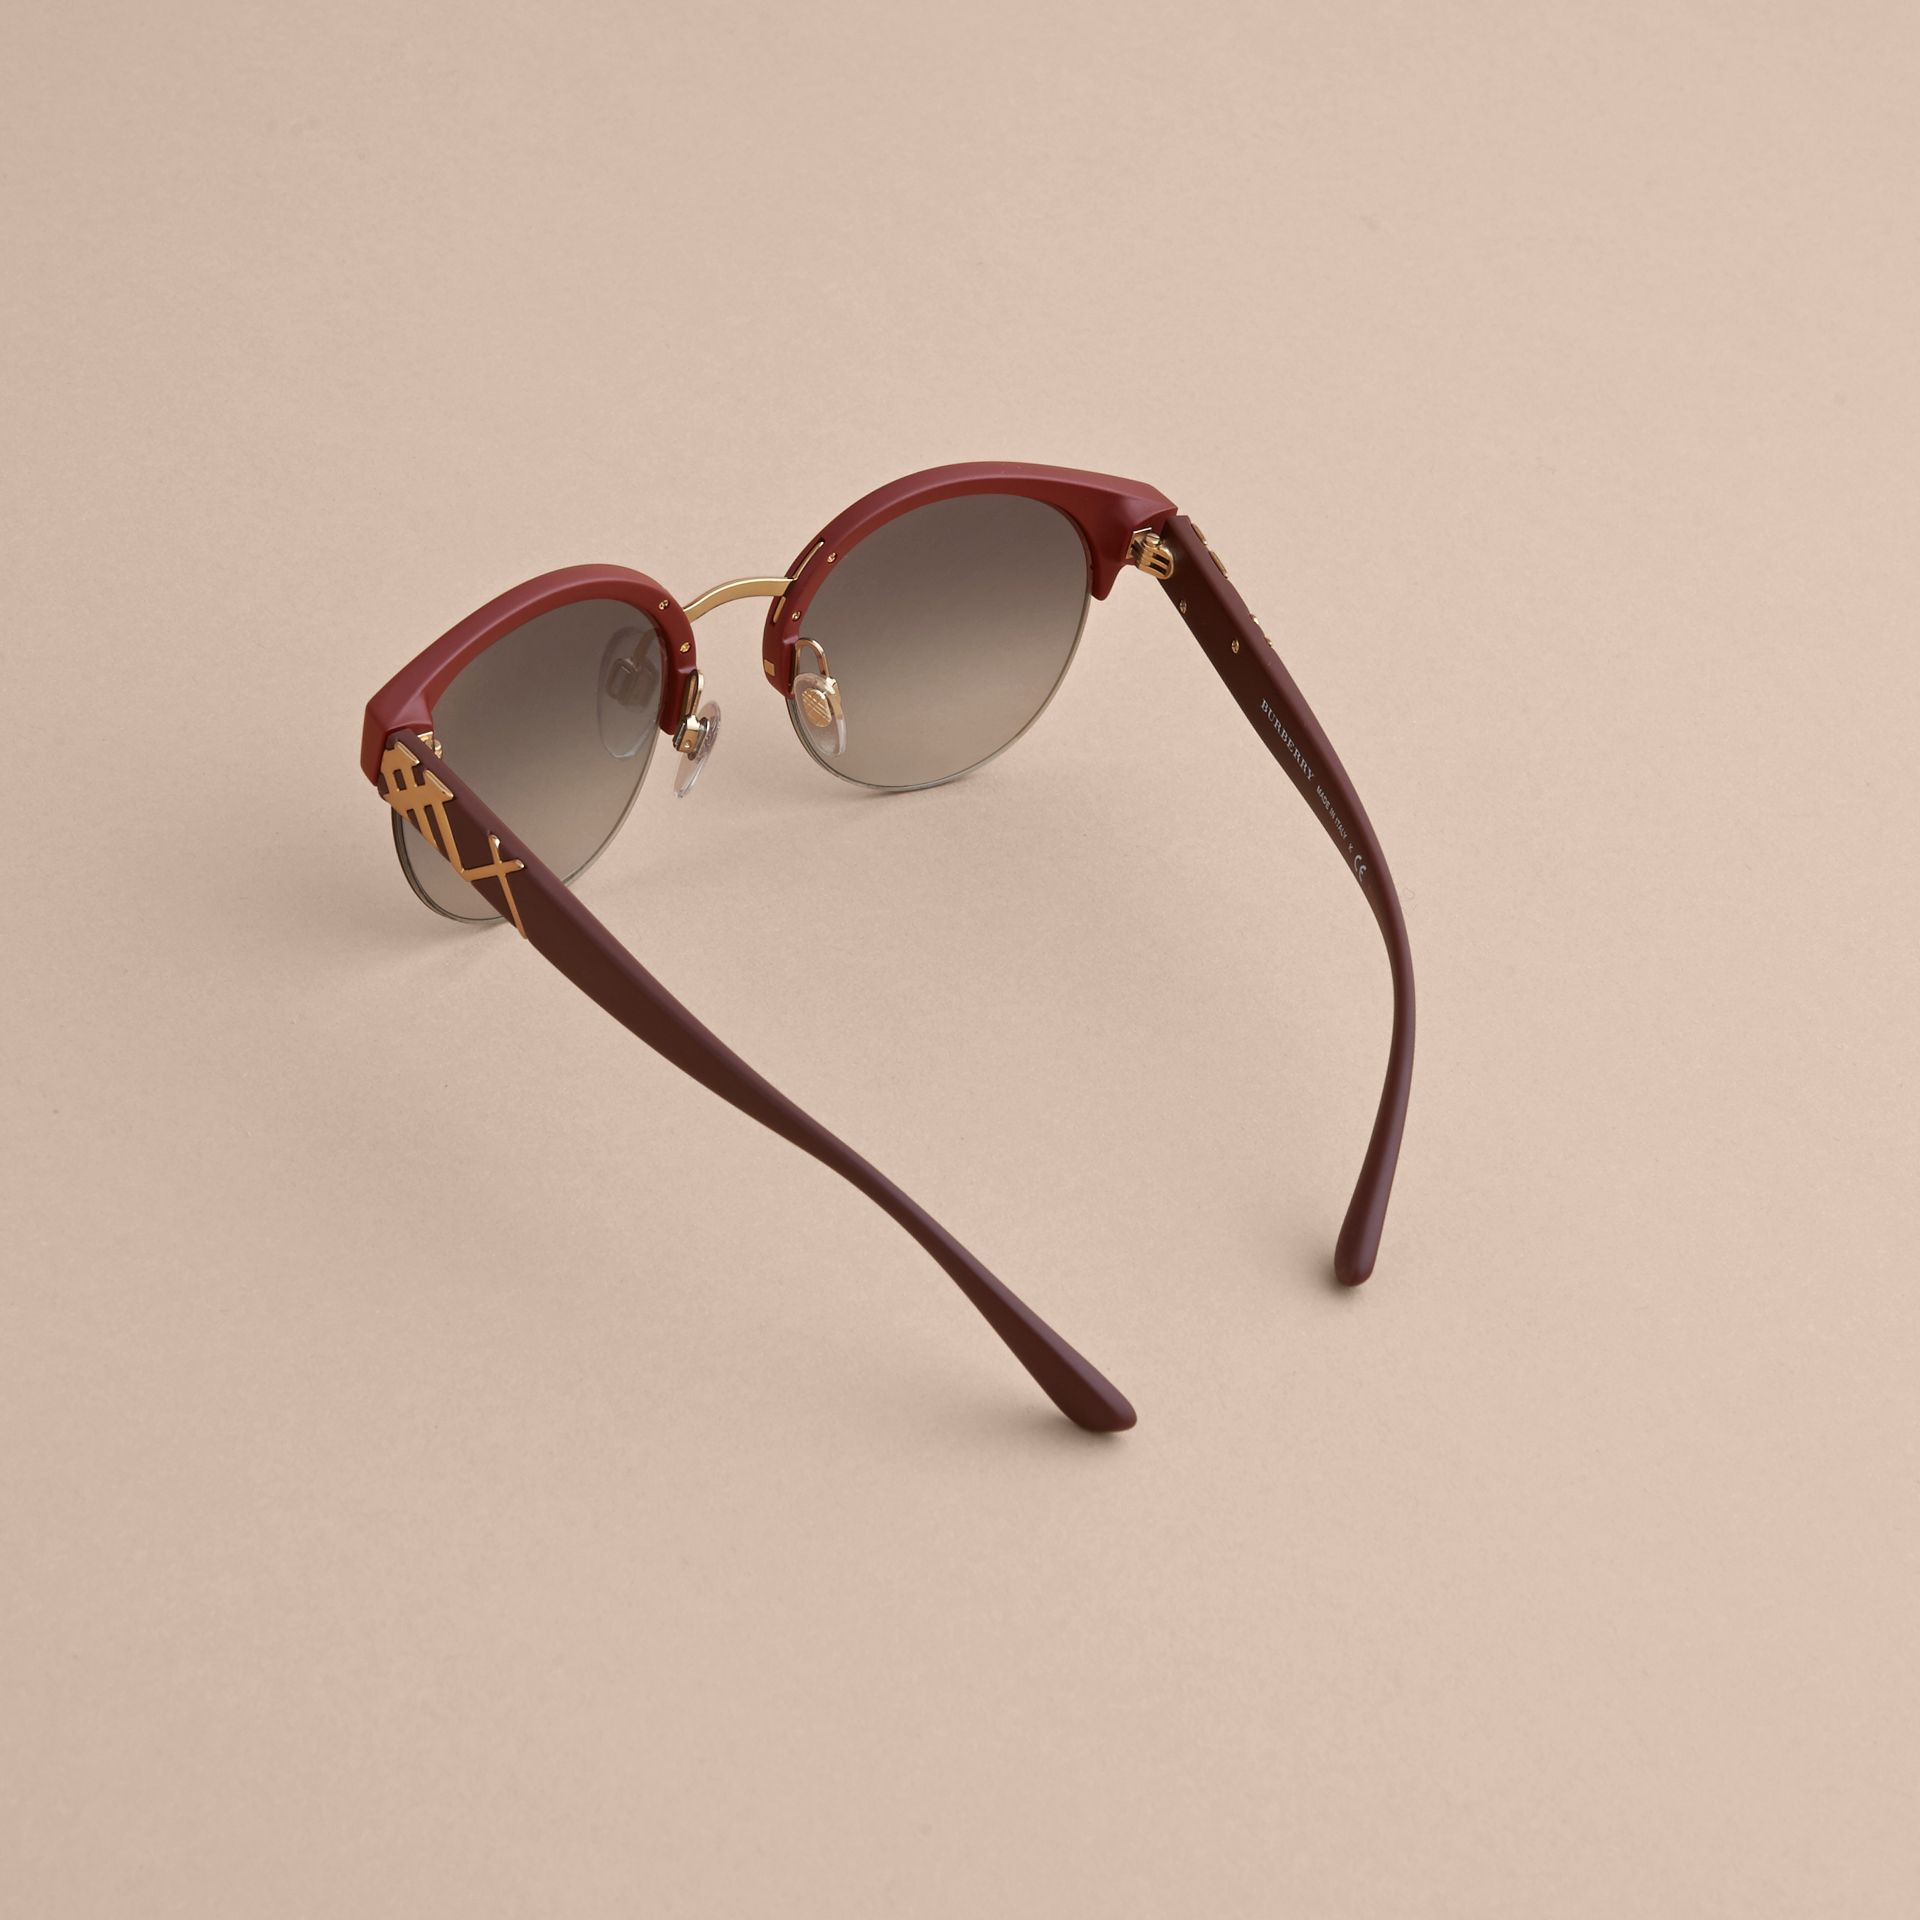 Check Detail Round Half-frame Sunglasses in Burgundy - Women | Burberry United Kingdom - gallery image 3